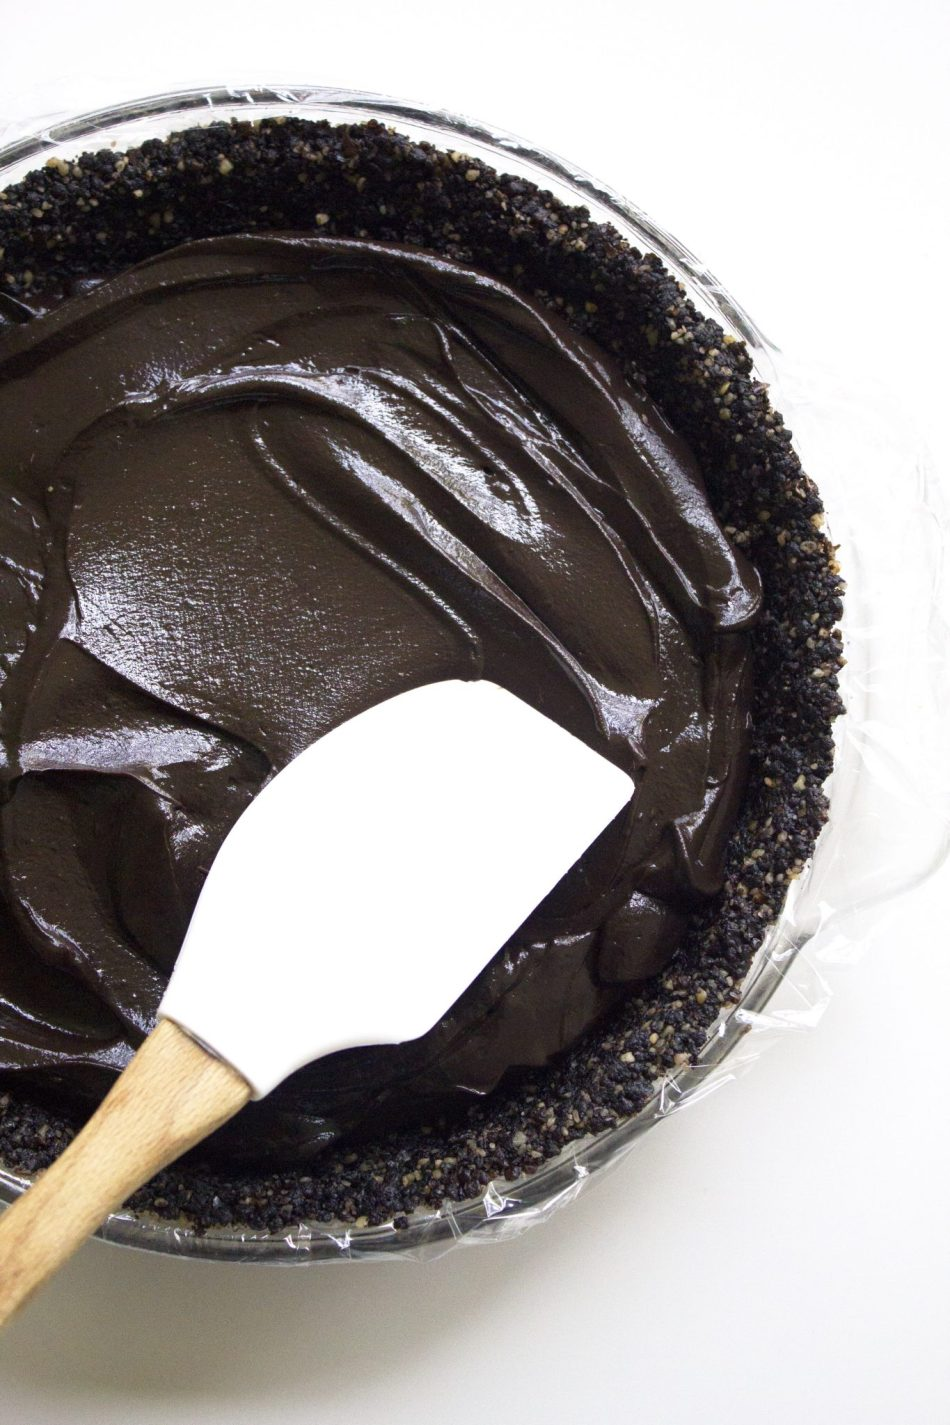 No-Bake Chocolate Coconut Cream Pie | Full of wholesome ingredients, this delicious pie is vegan and free of dairy, gluten, and grains!